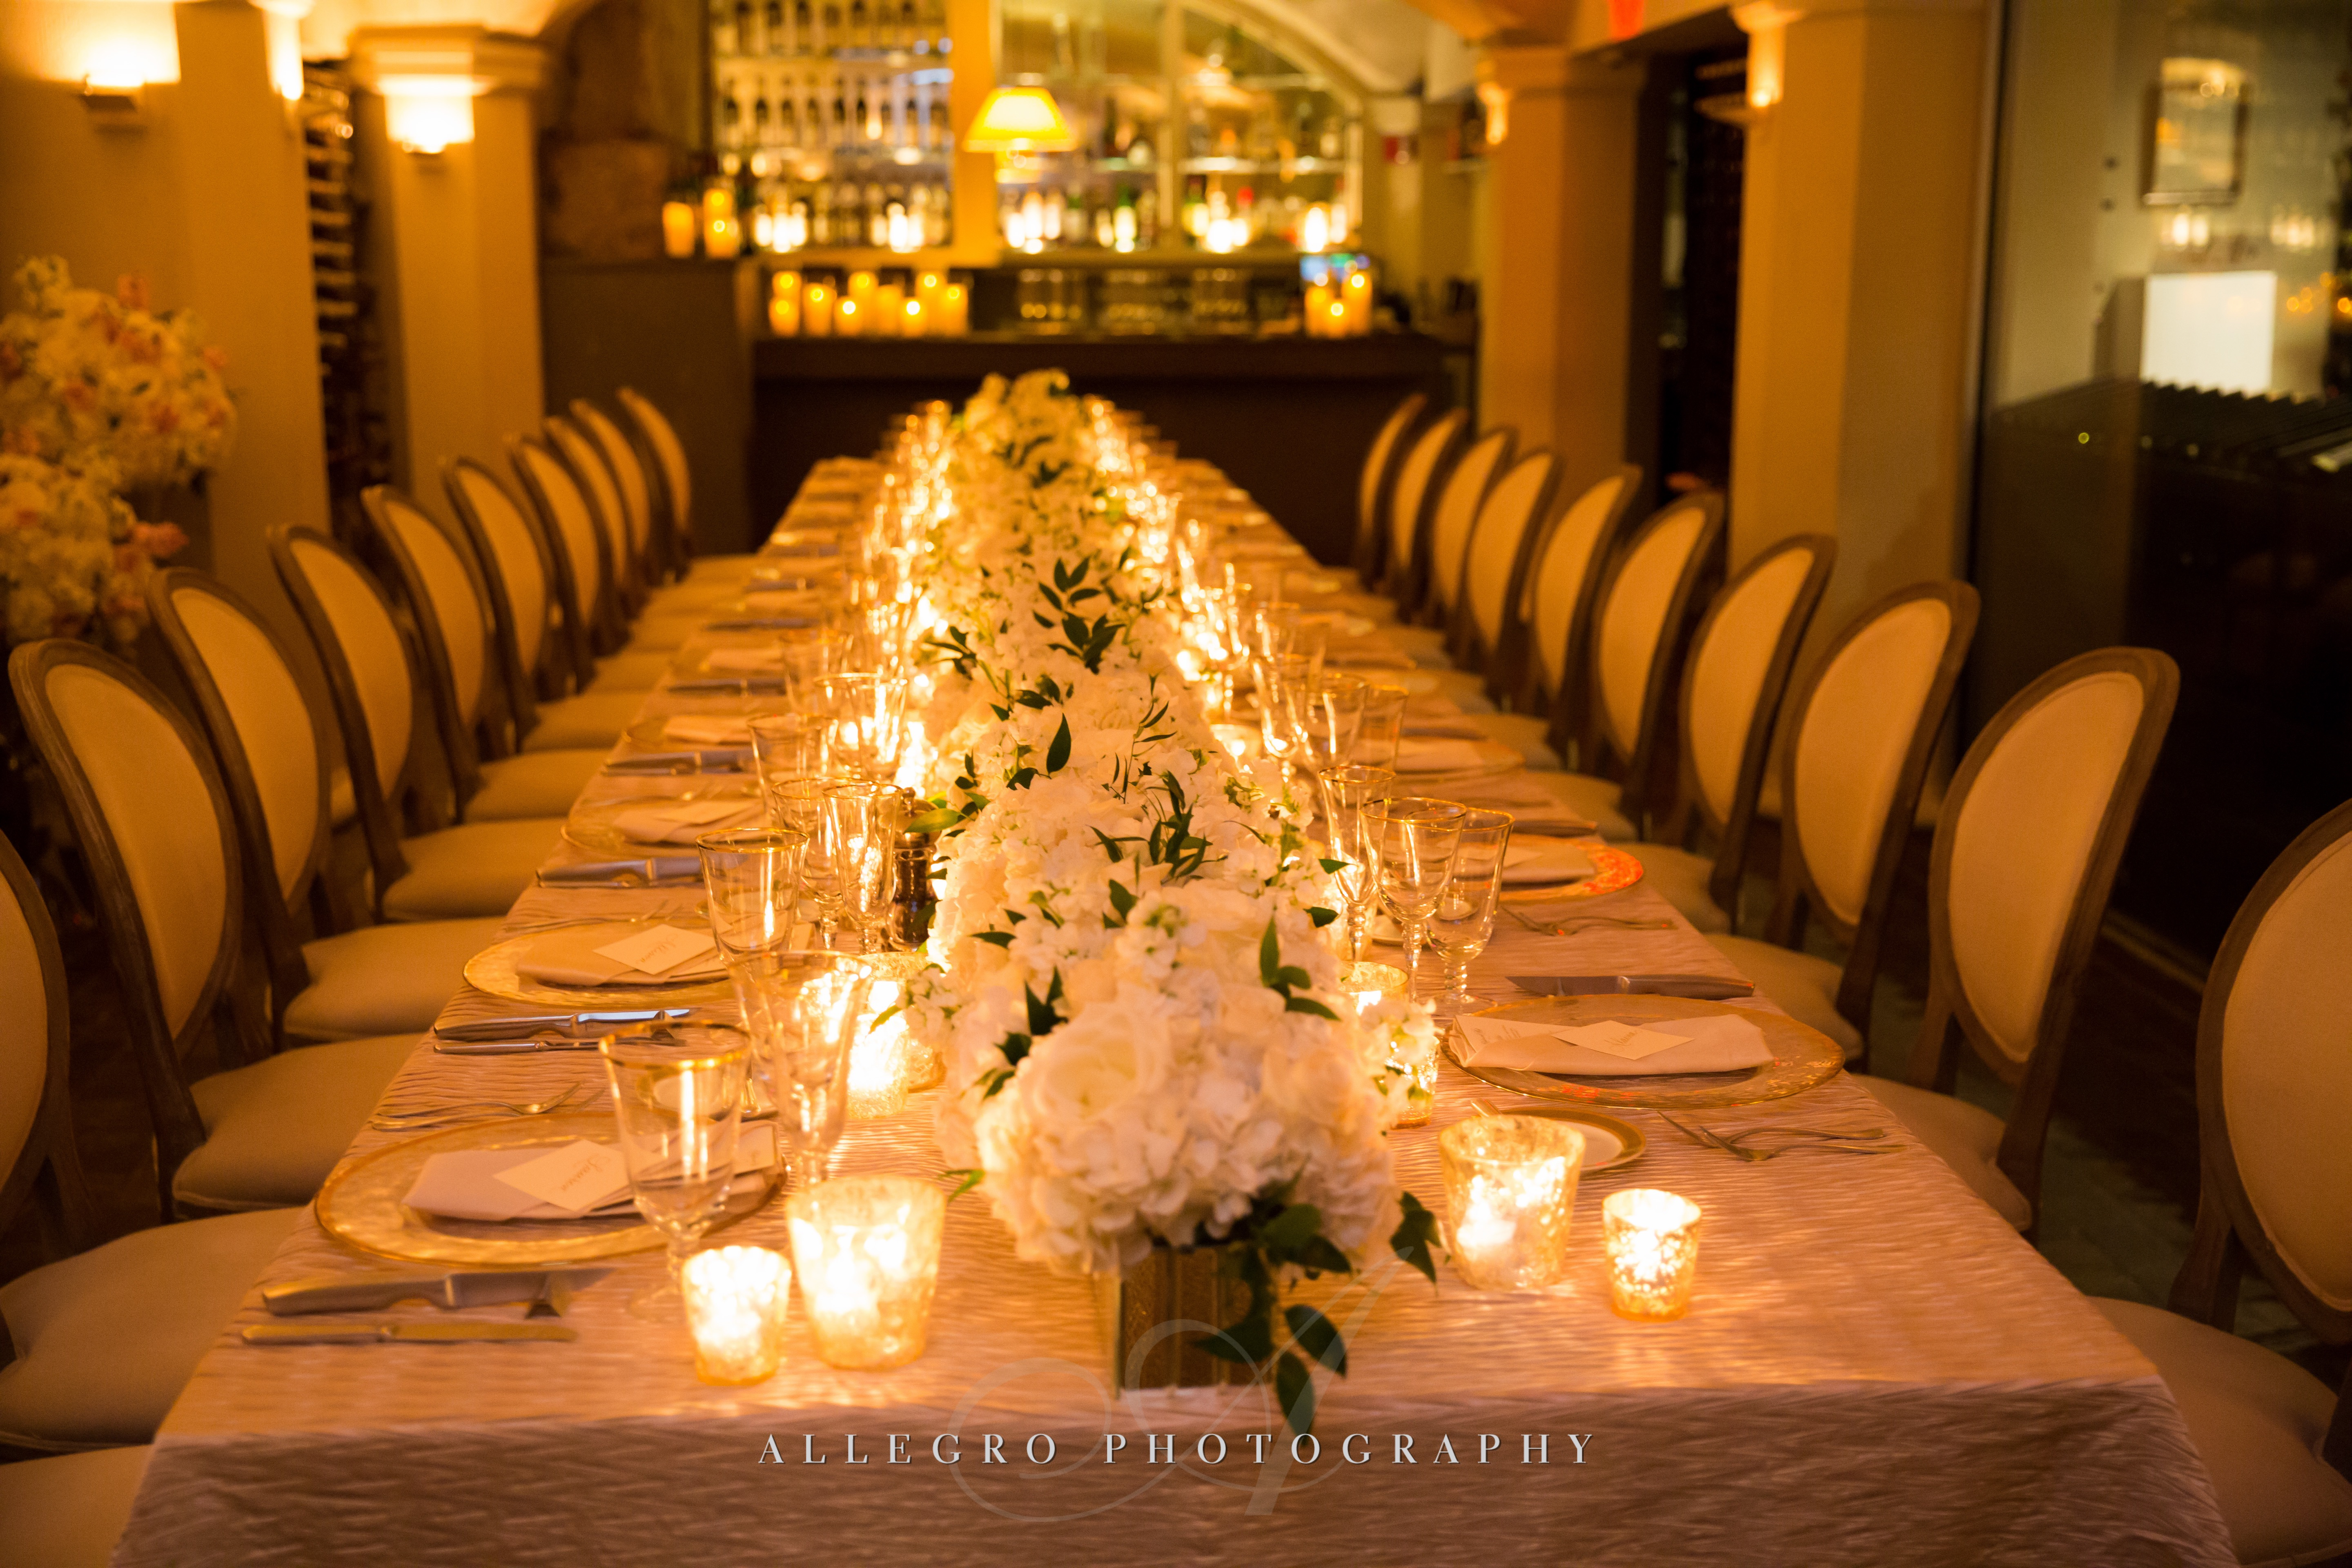 flou(-e)r_specialty_floral_events_allegro_photography_candlelight_wedding_reception